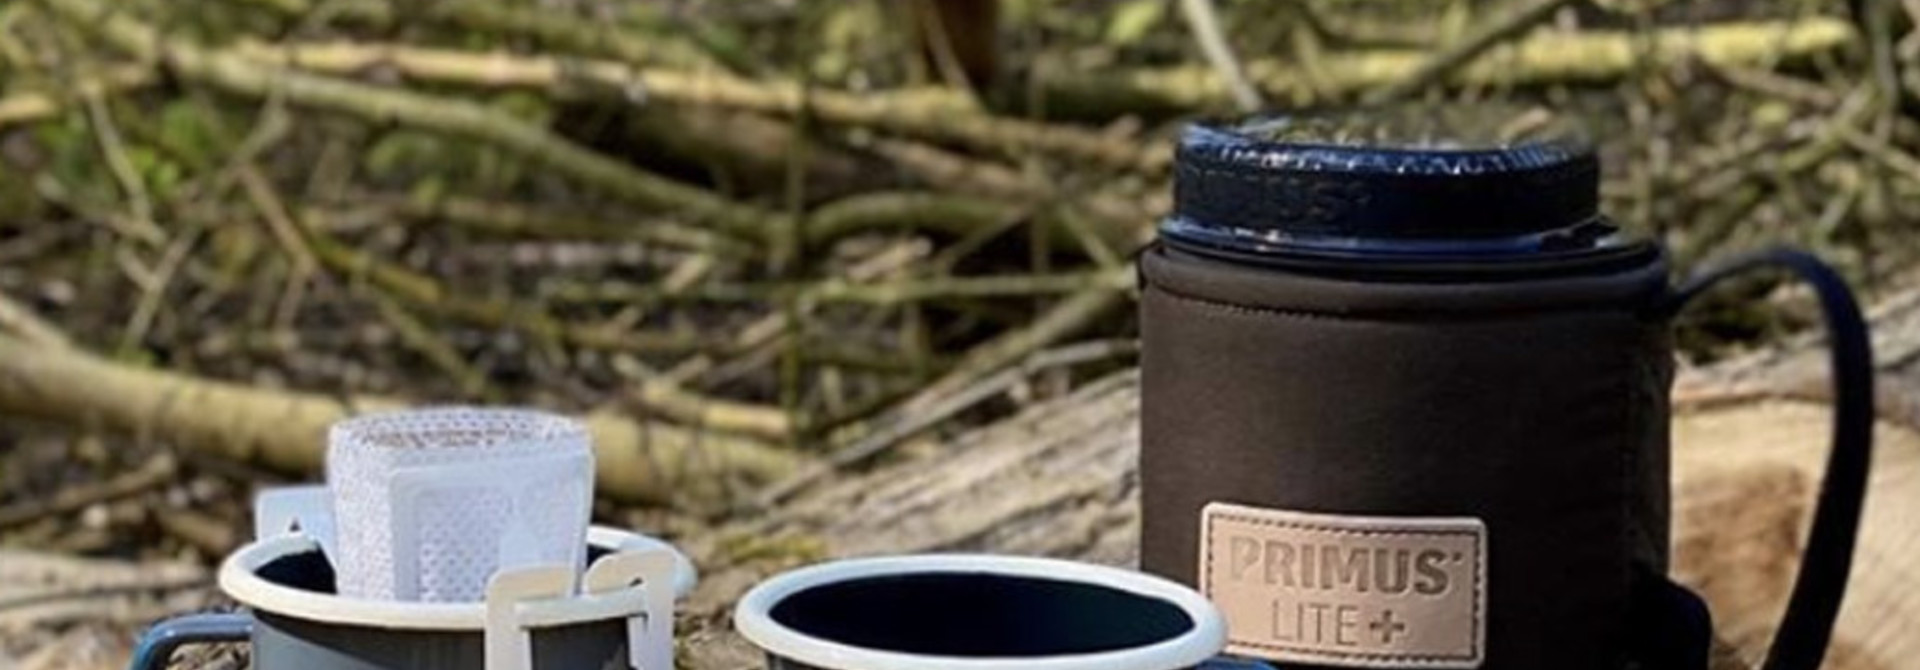 Brew delicious coffee in the great outdoors